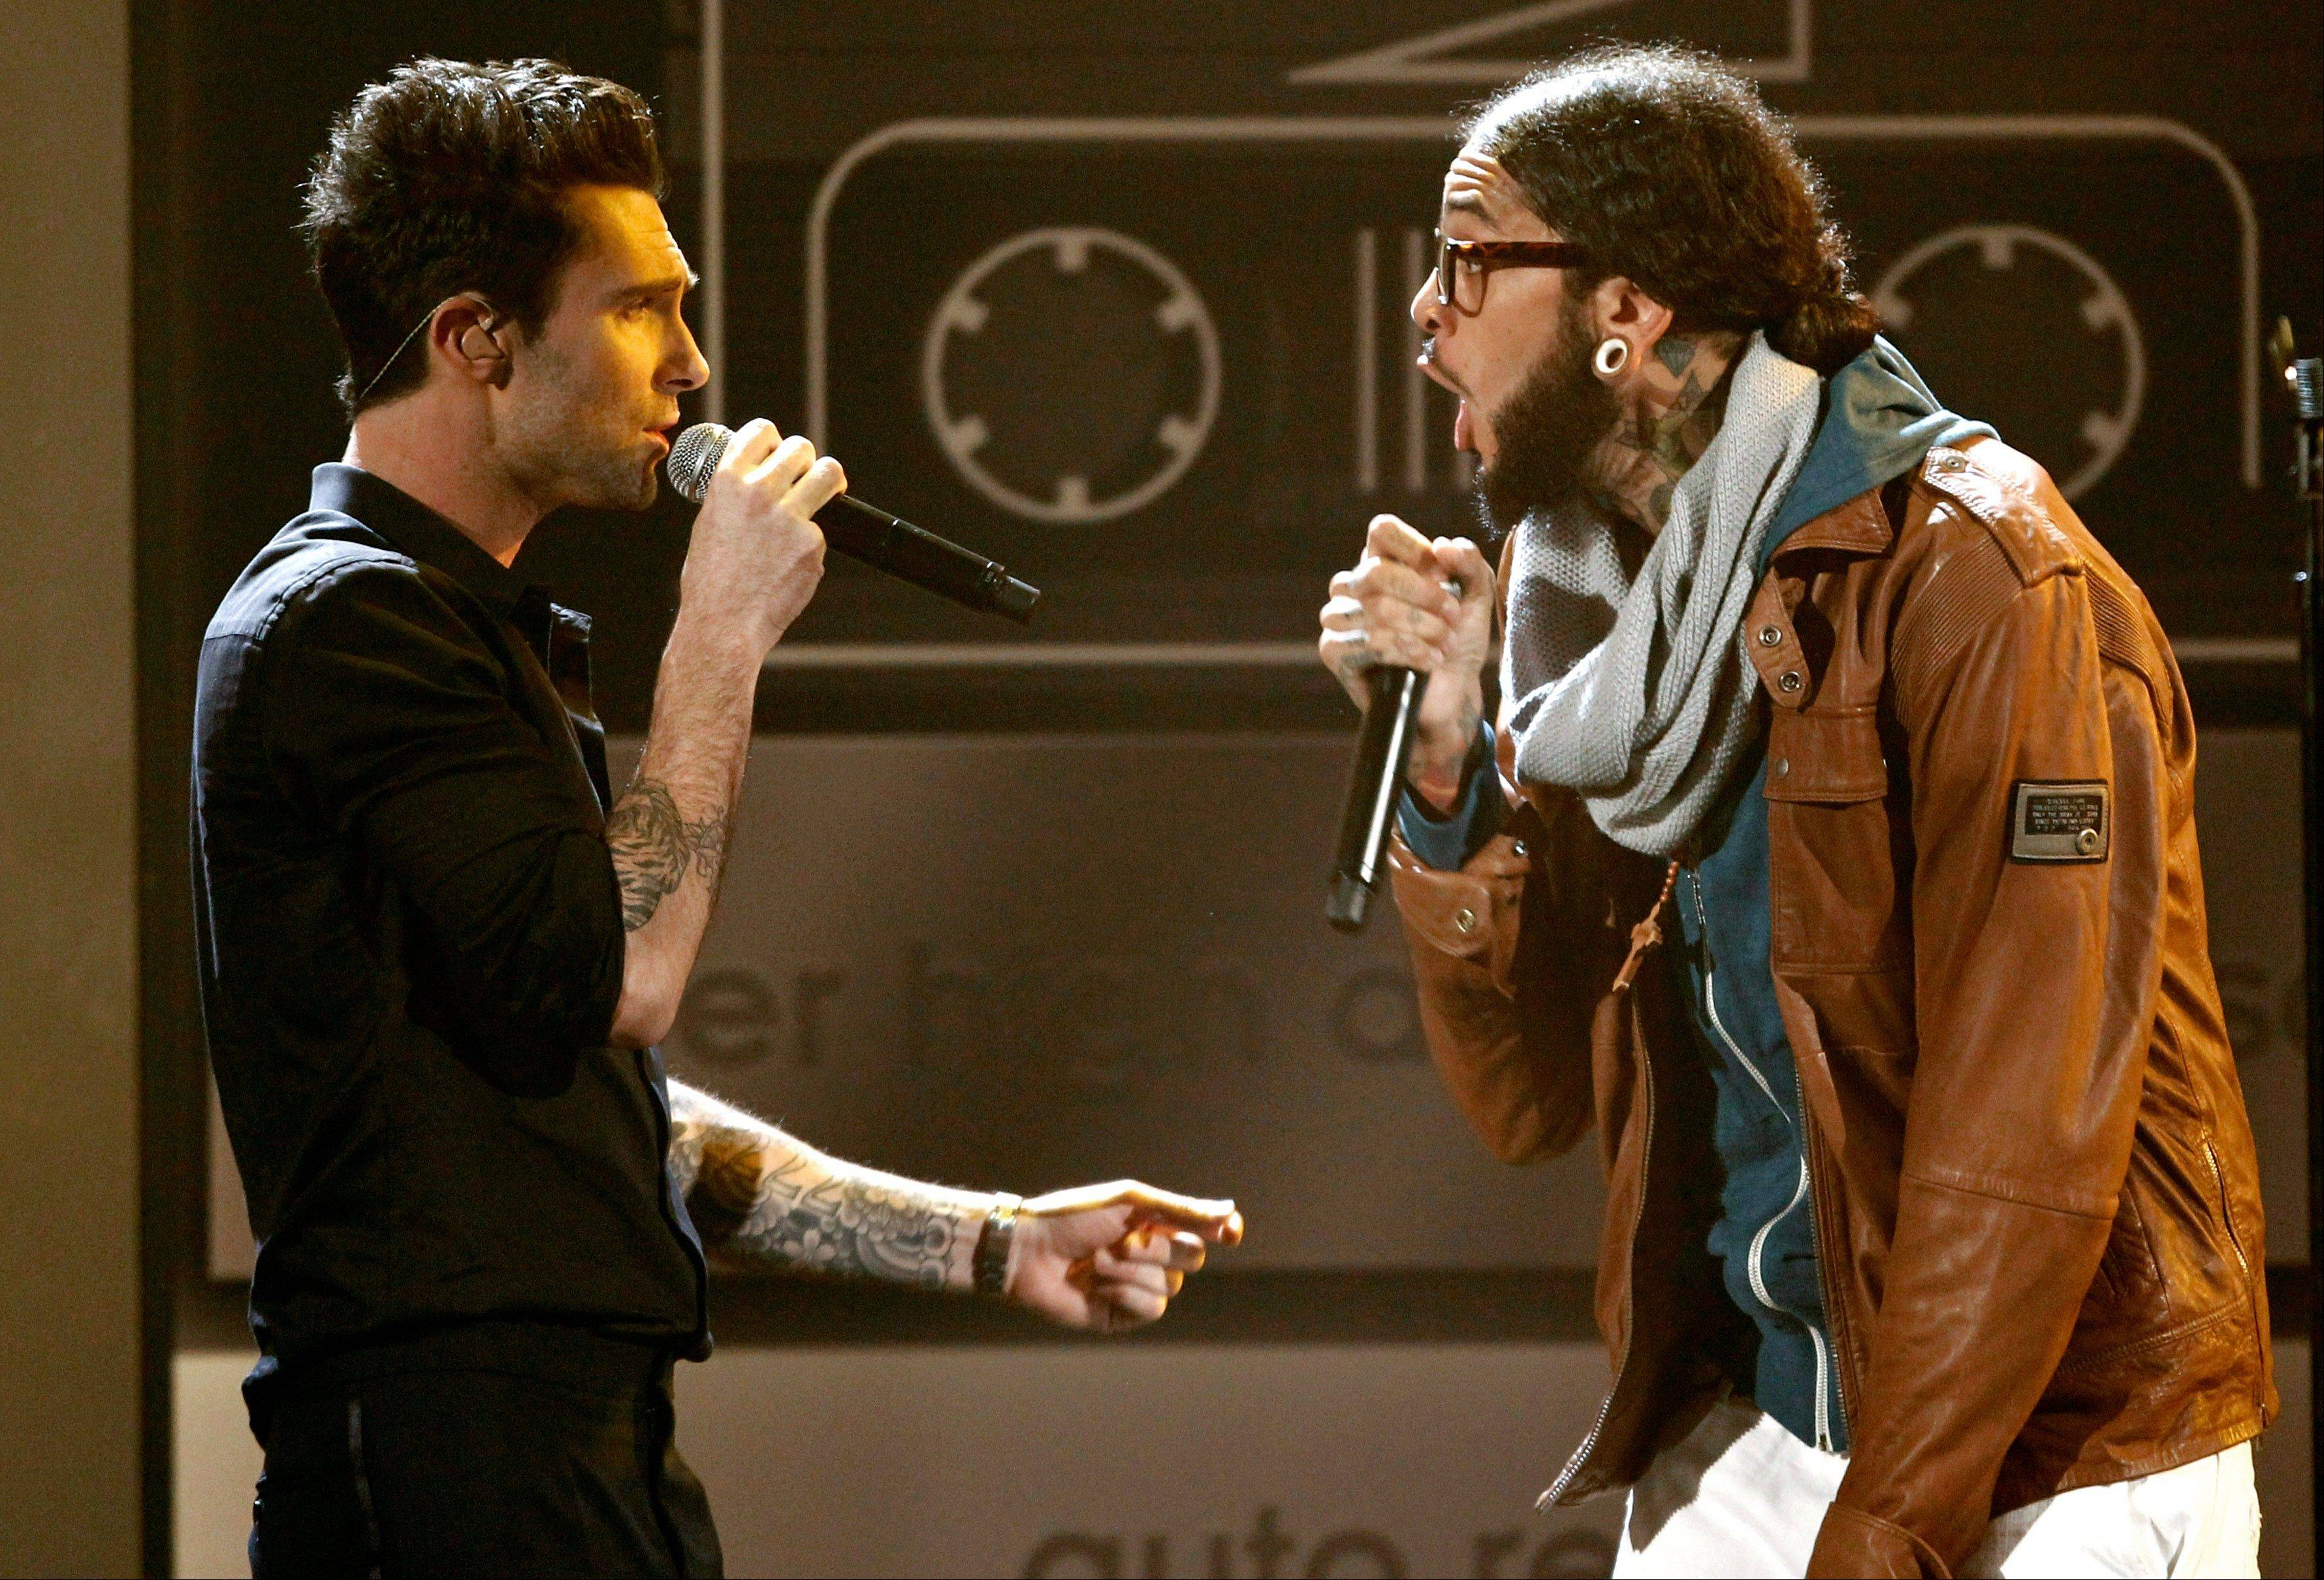 Travis McCoy, right, of Gym Class Heroes and Adam Levine of musical group Maroon 5 perform at the 39th Annual American Music Awards on Sunday, Nov. 20, 2011 in Los Angeles.